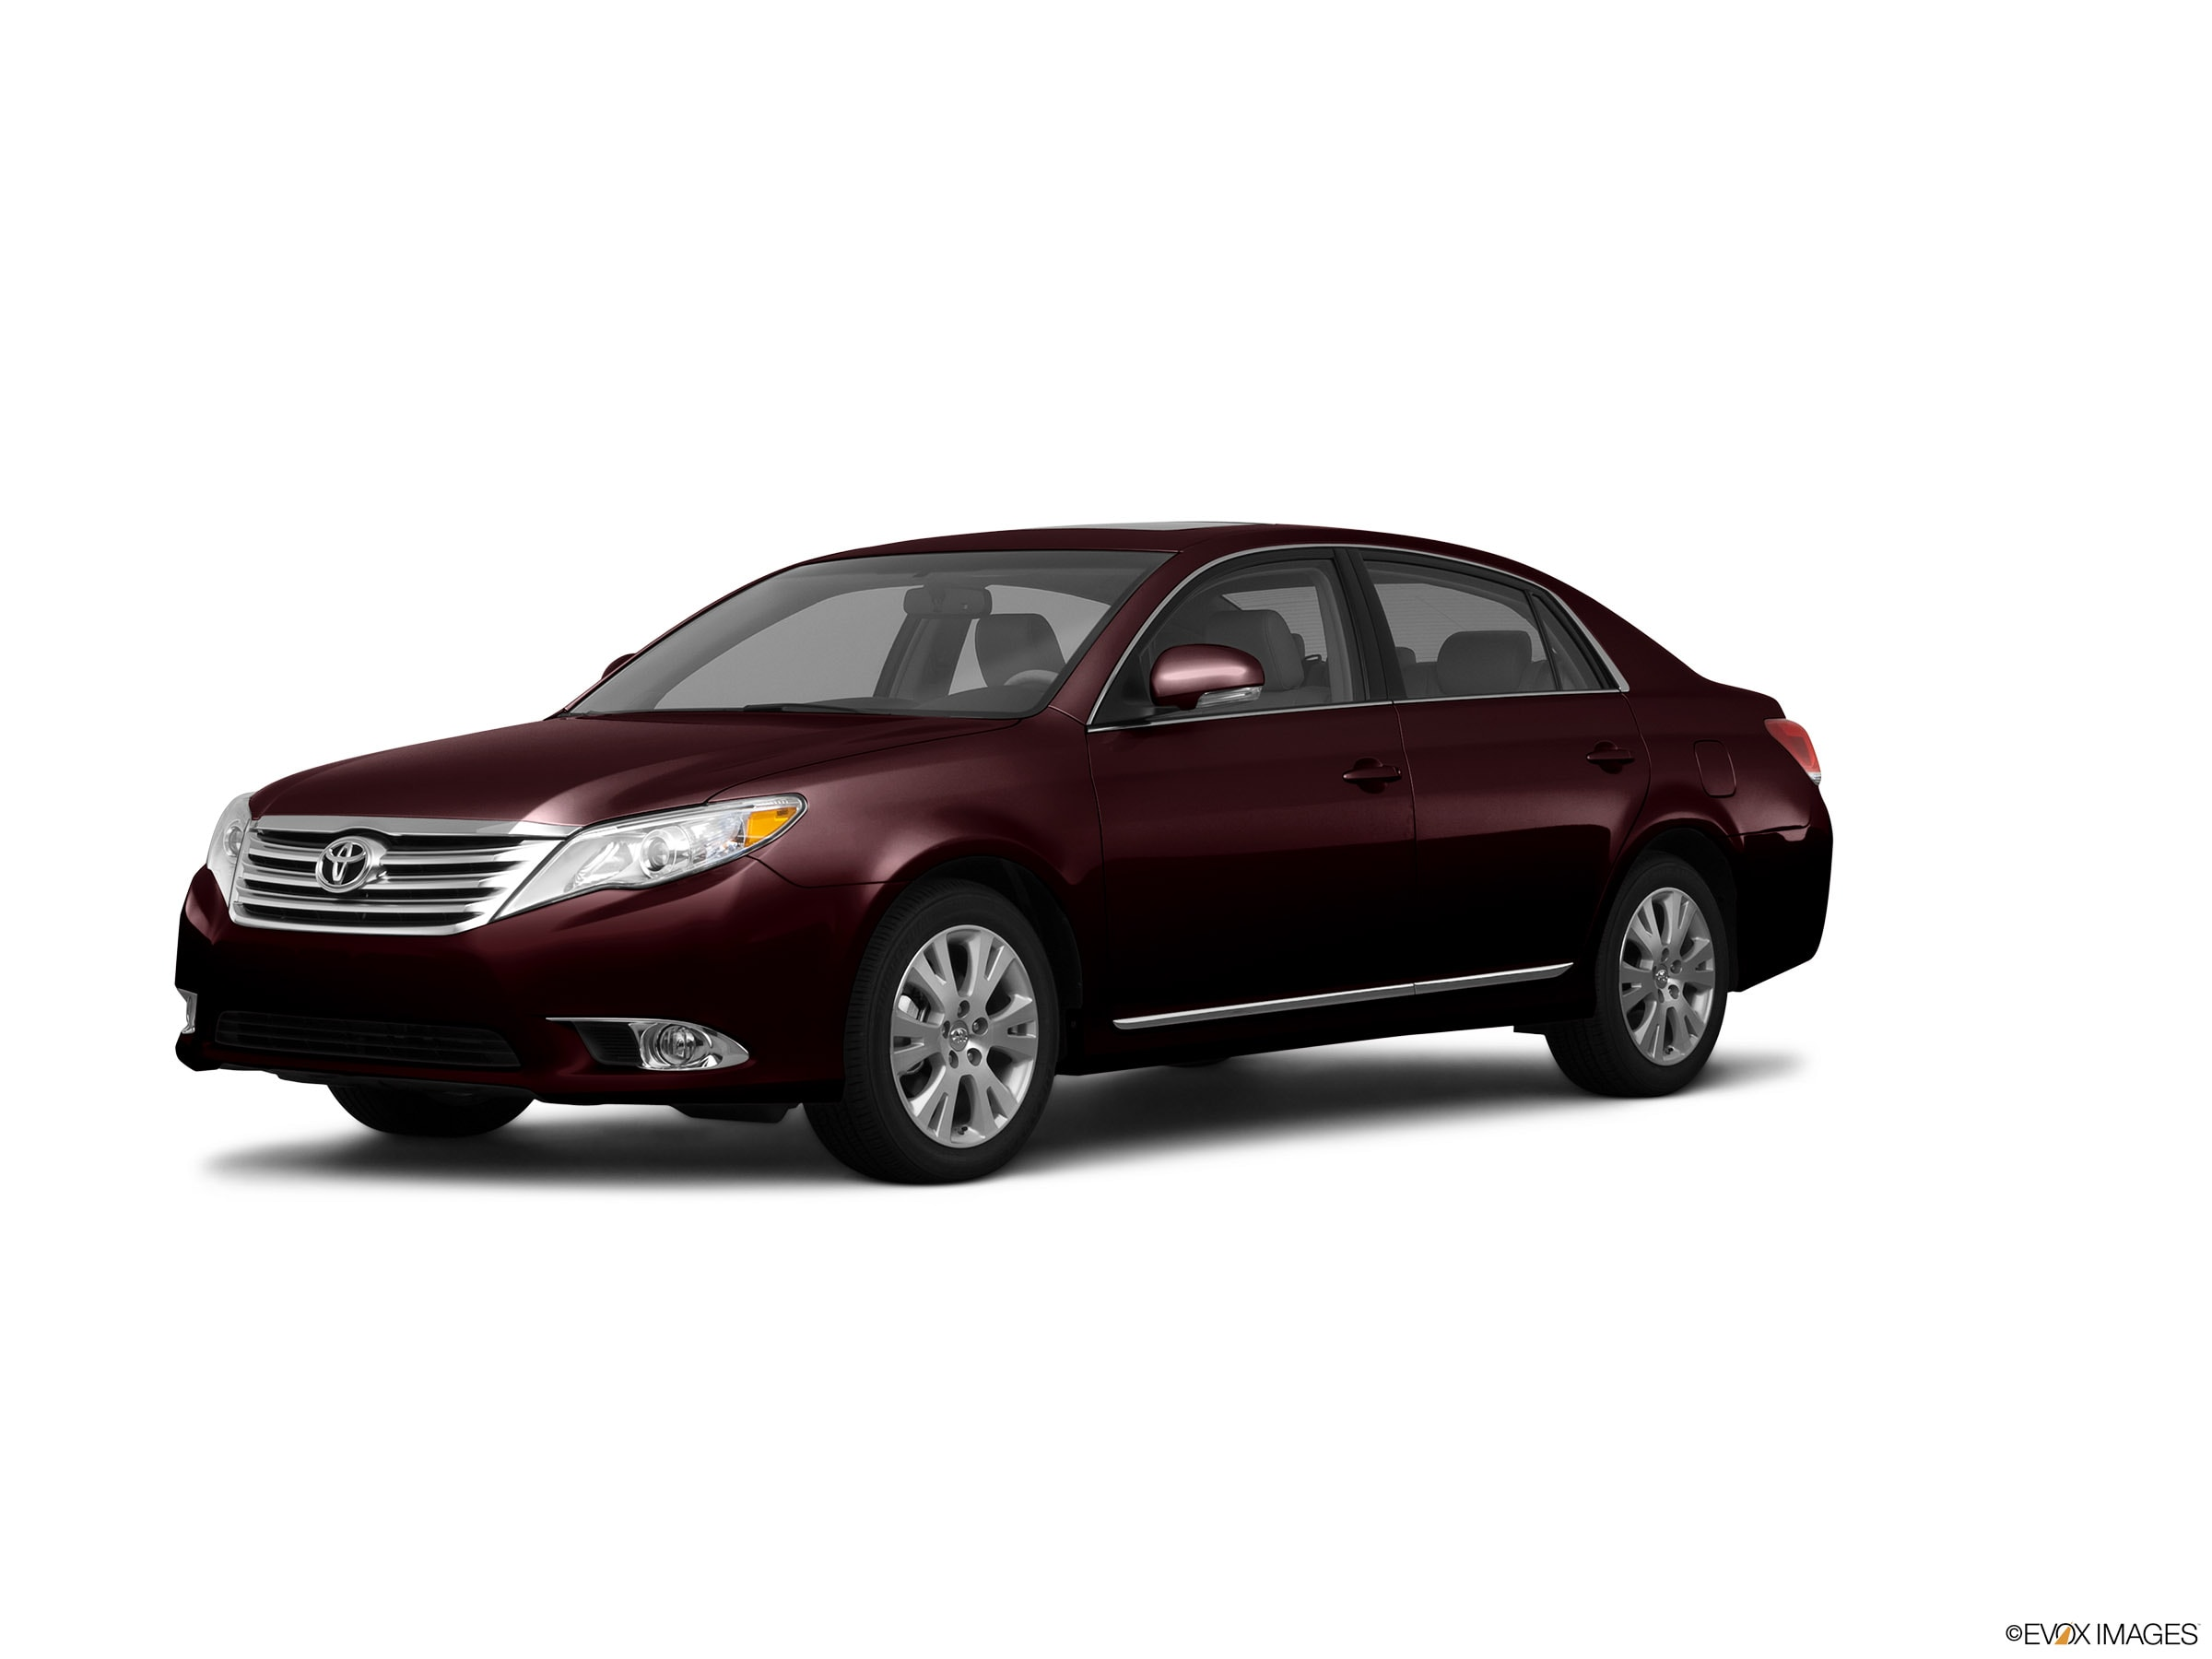 Certified 2011 Toyota Avalon Avalon with VIN 4T1BK3DB4BU410257 for sale in Maplewood, Minnesota